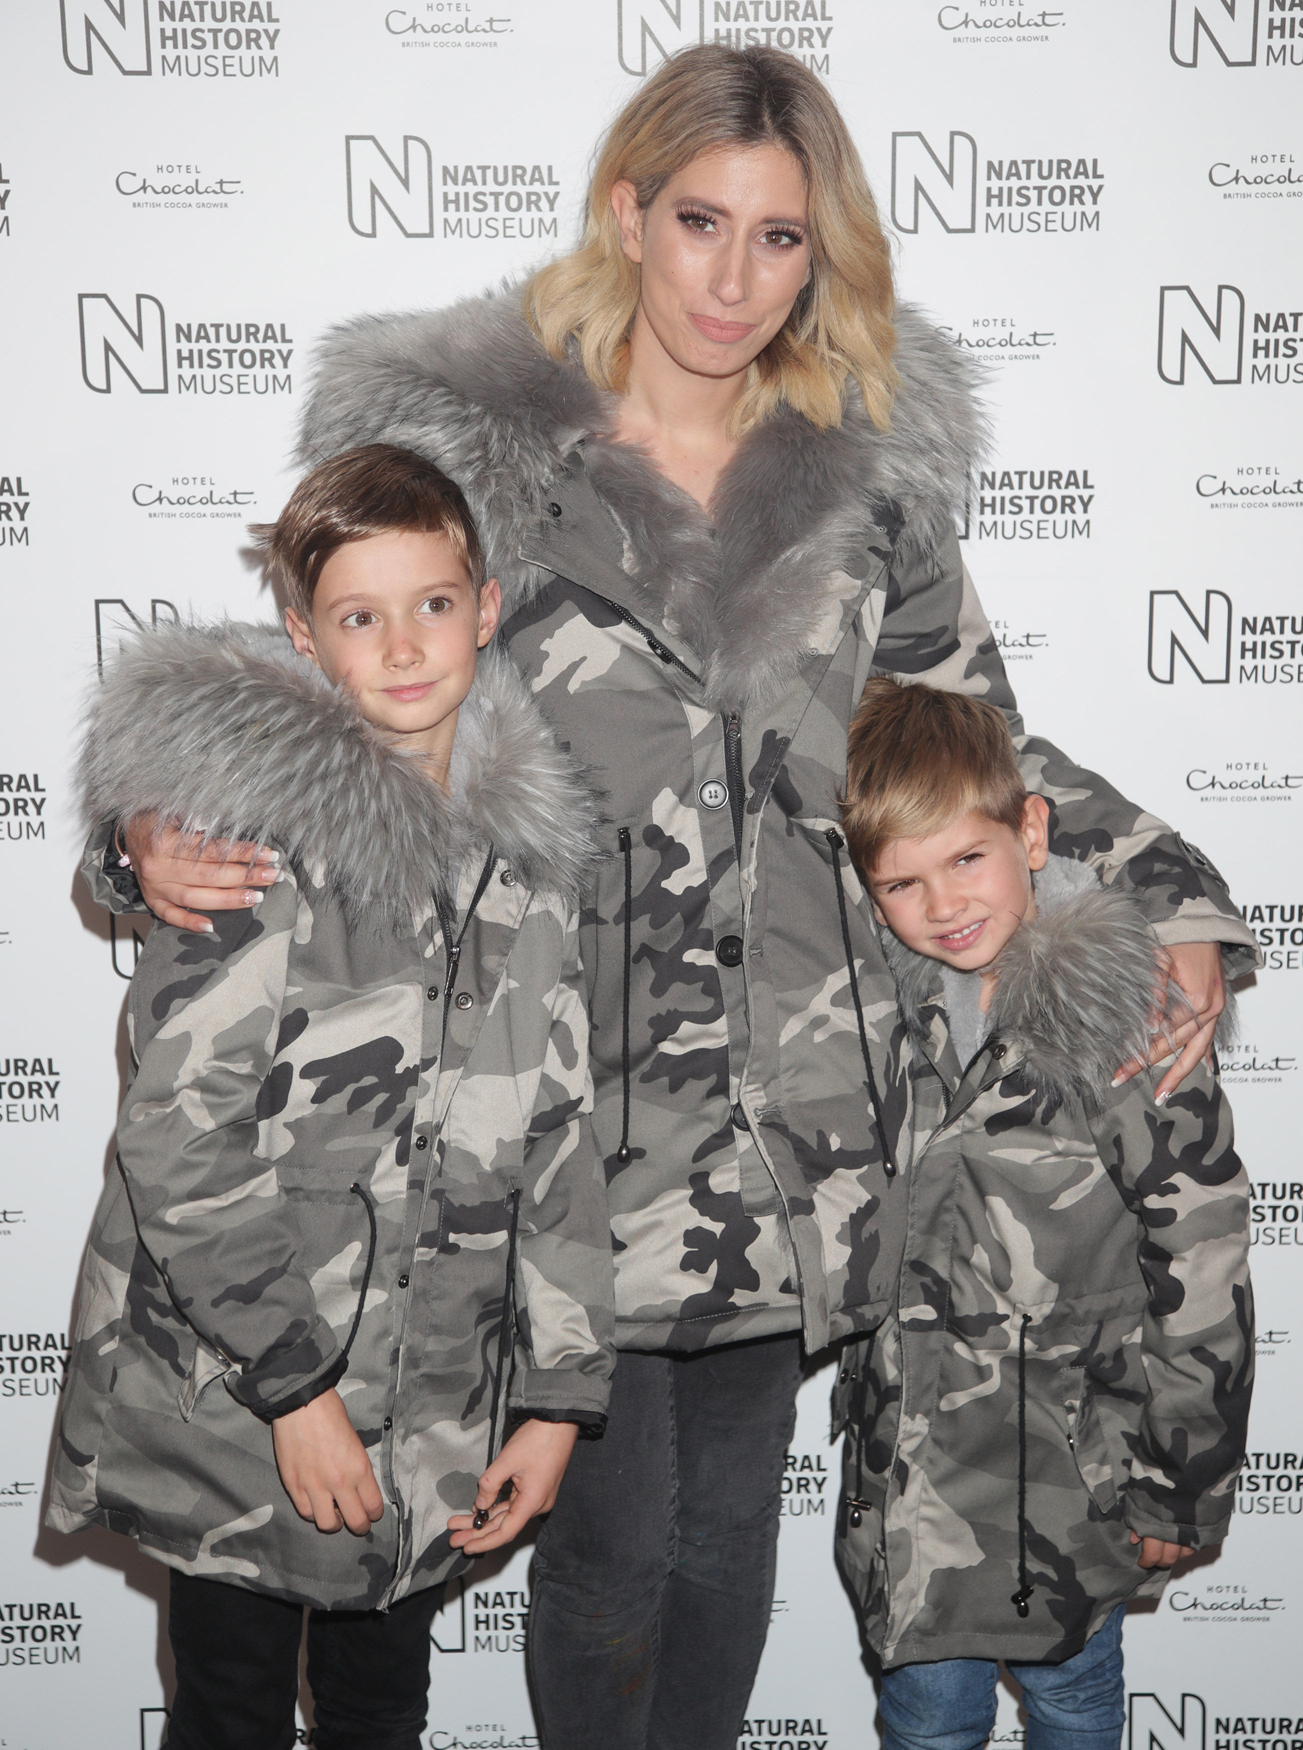 Stacey Solomon and her children , Zachary (left) and Leighton at the launch of the Natural History Museum's ice rink in London, 2017. (Yui Mok/PA)